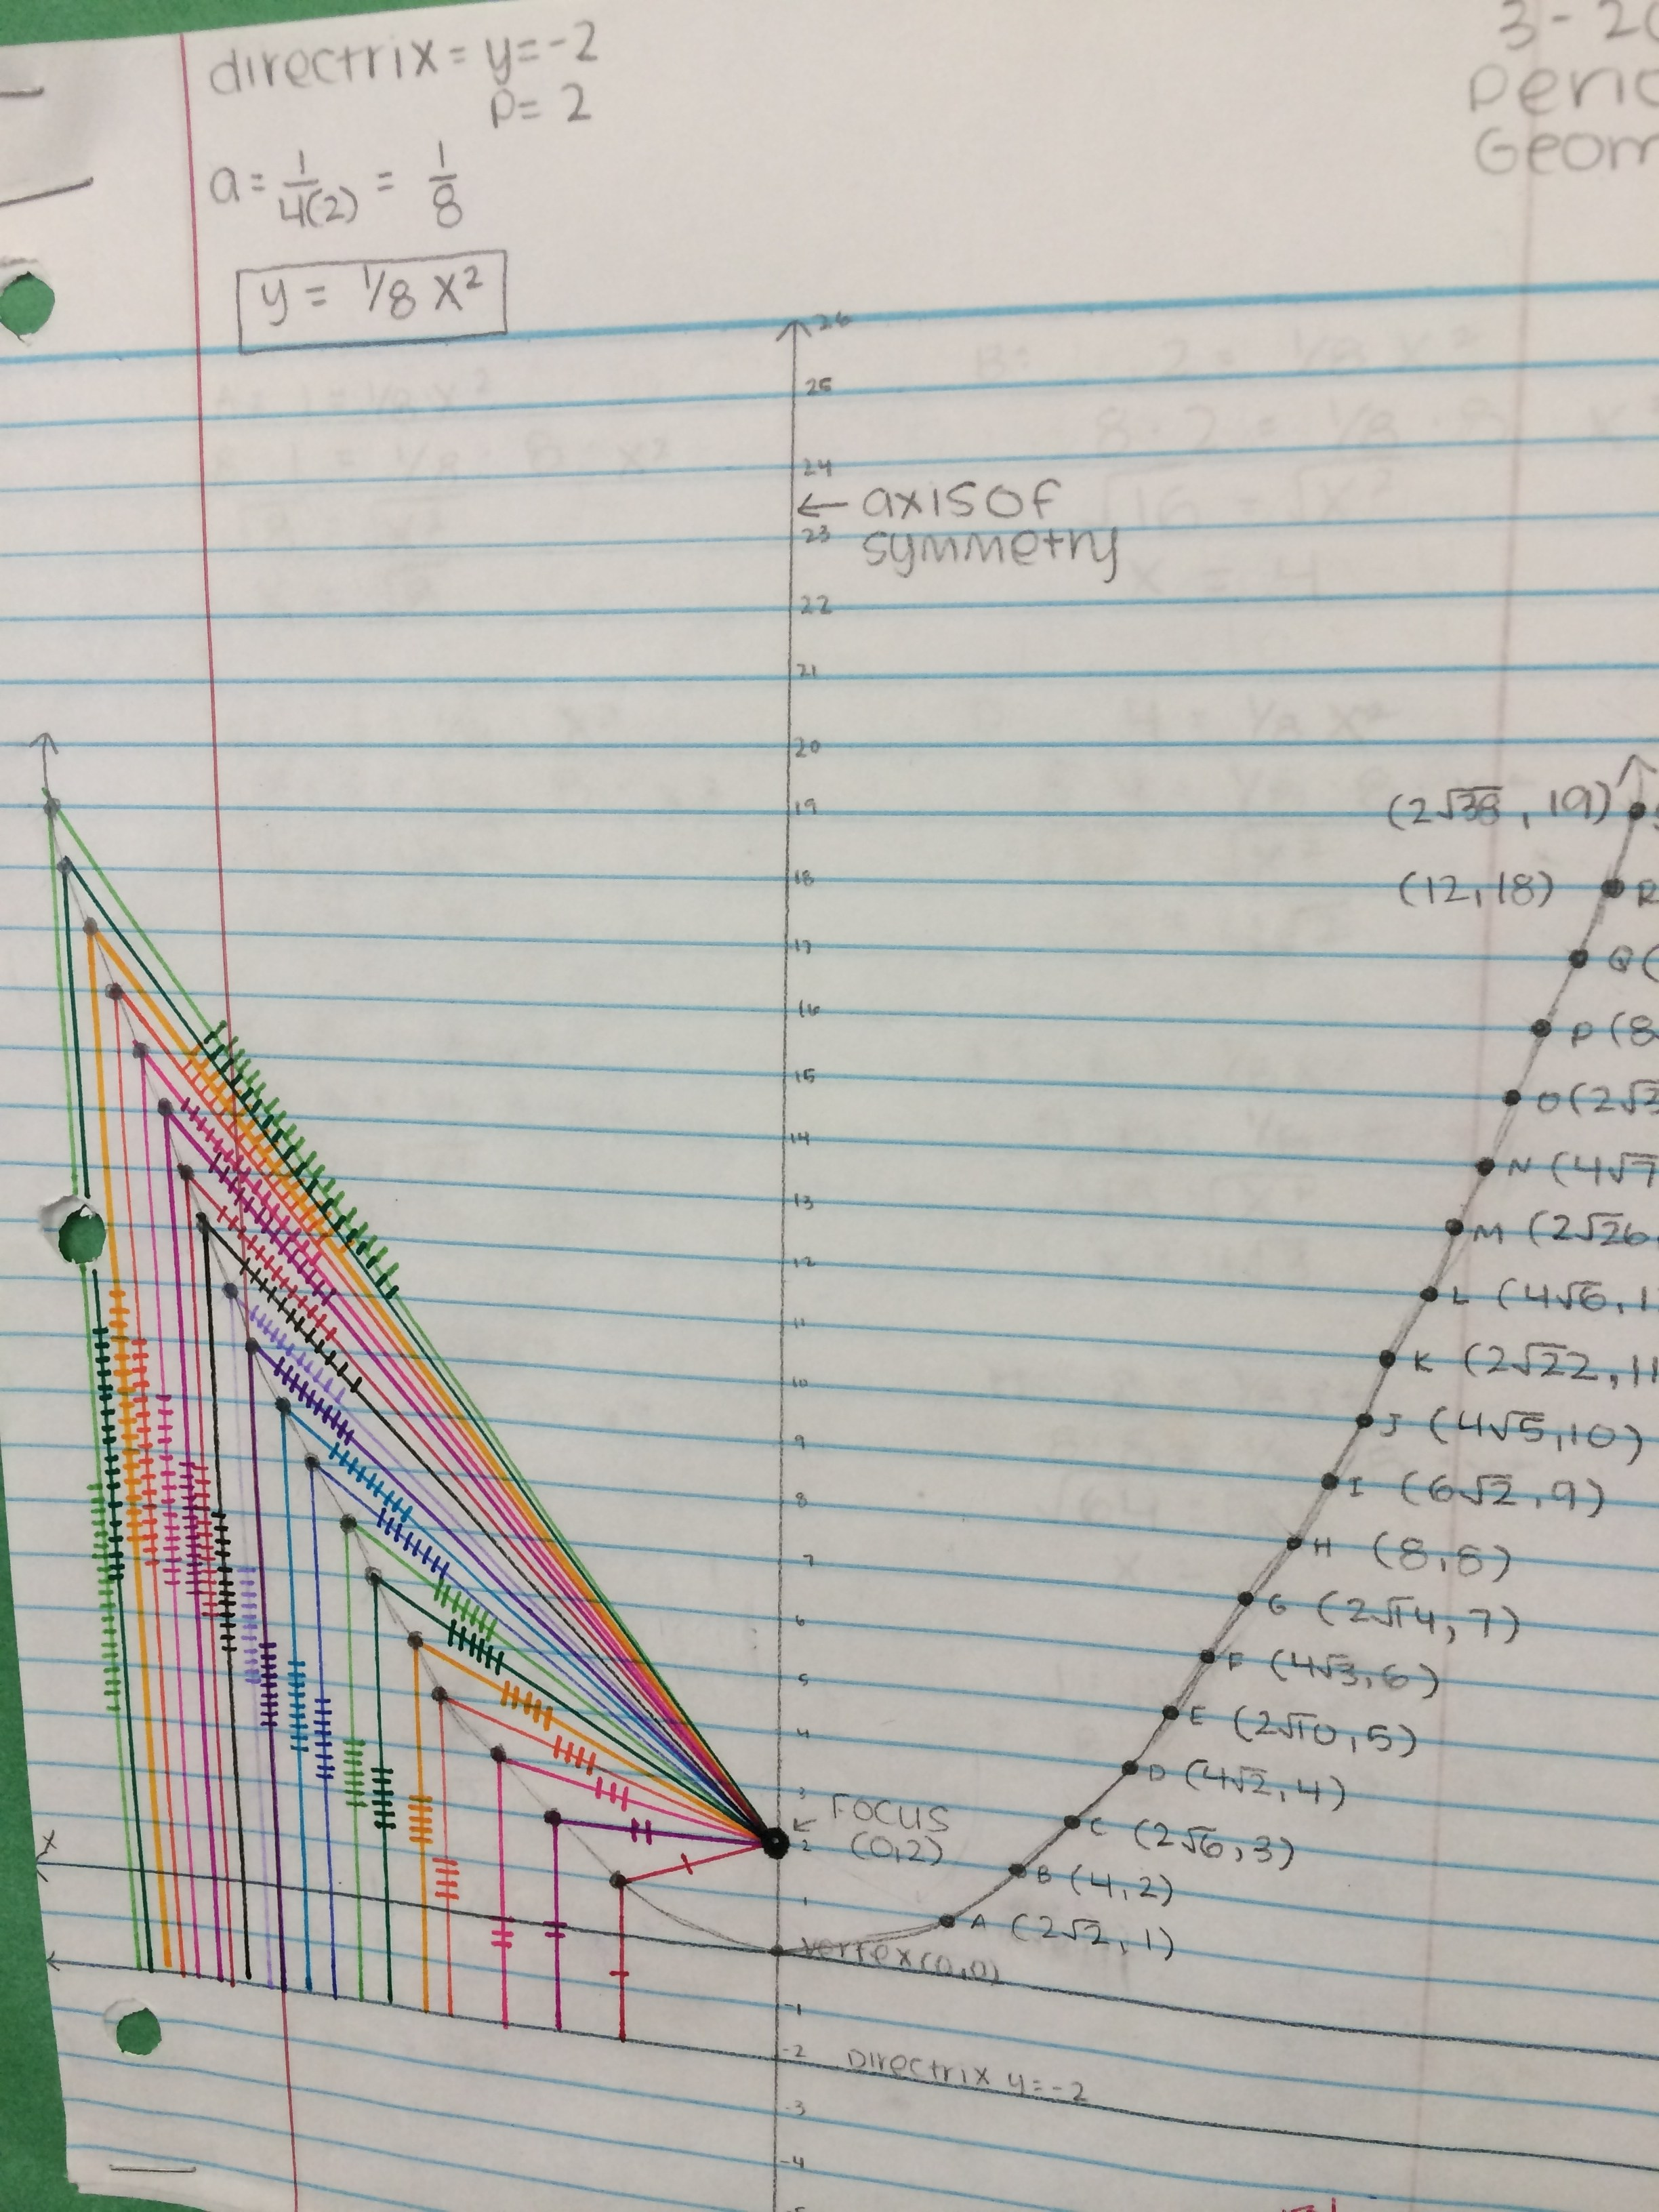 In math class, the freshmen were busy constructing a parabola using the focus and directrix and then deriving its equation!